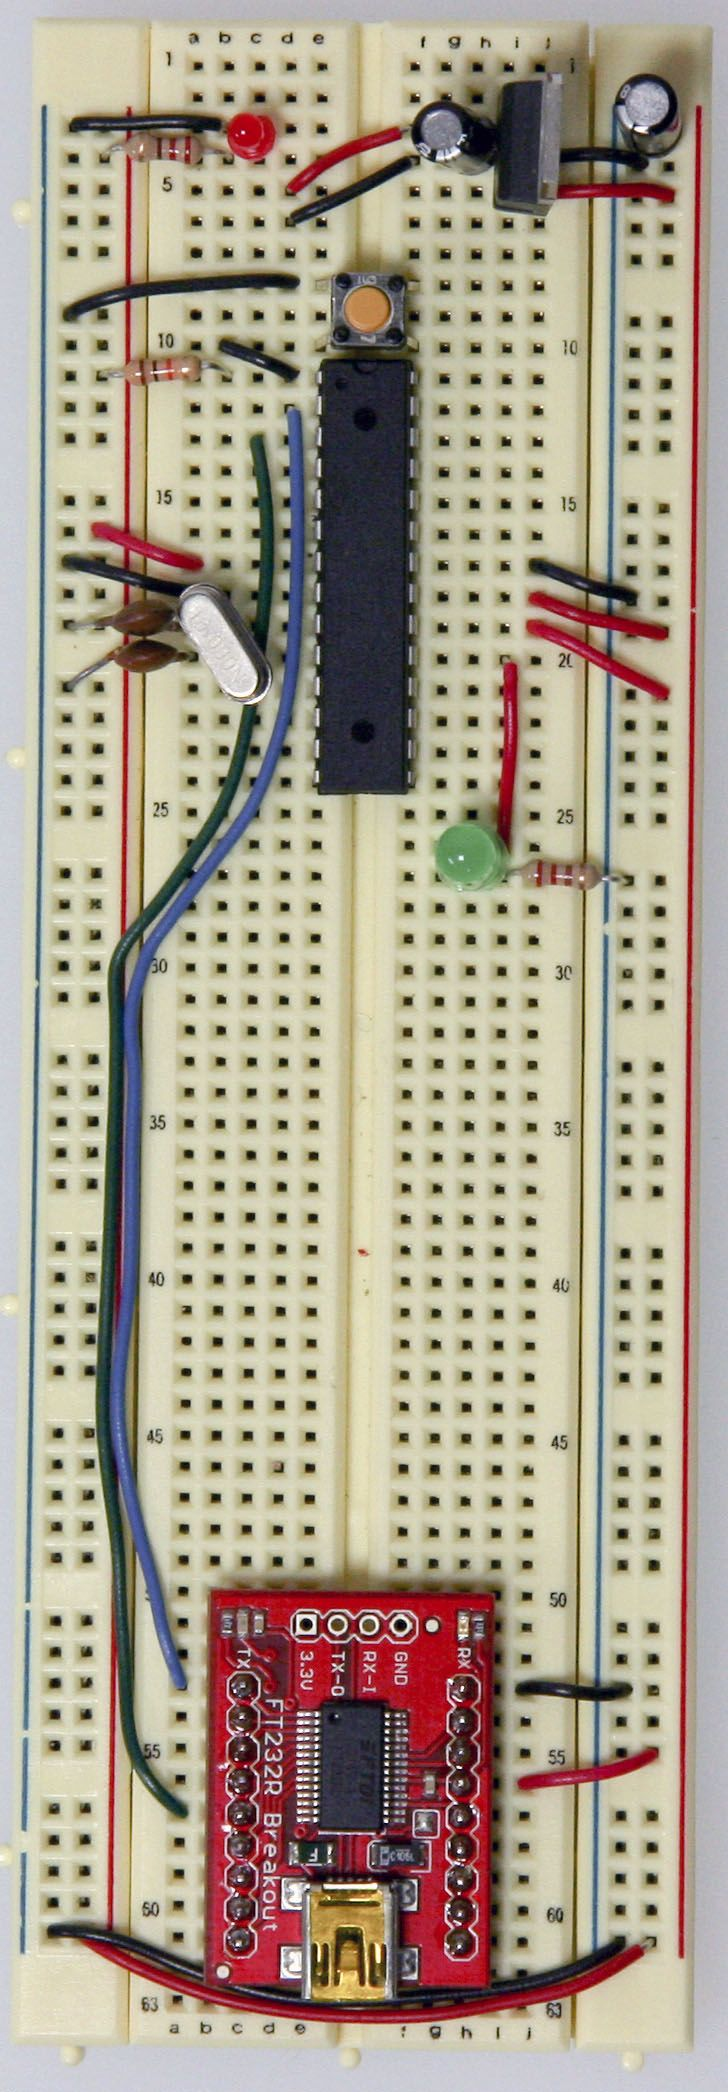 Building an Arduino on a Breadboard                                                                                                                                                      More